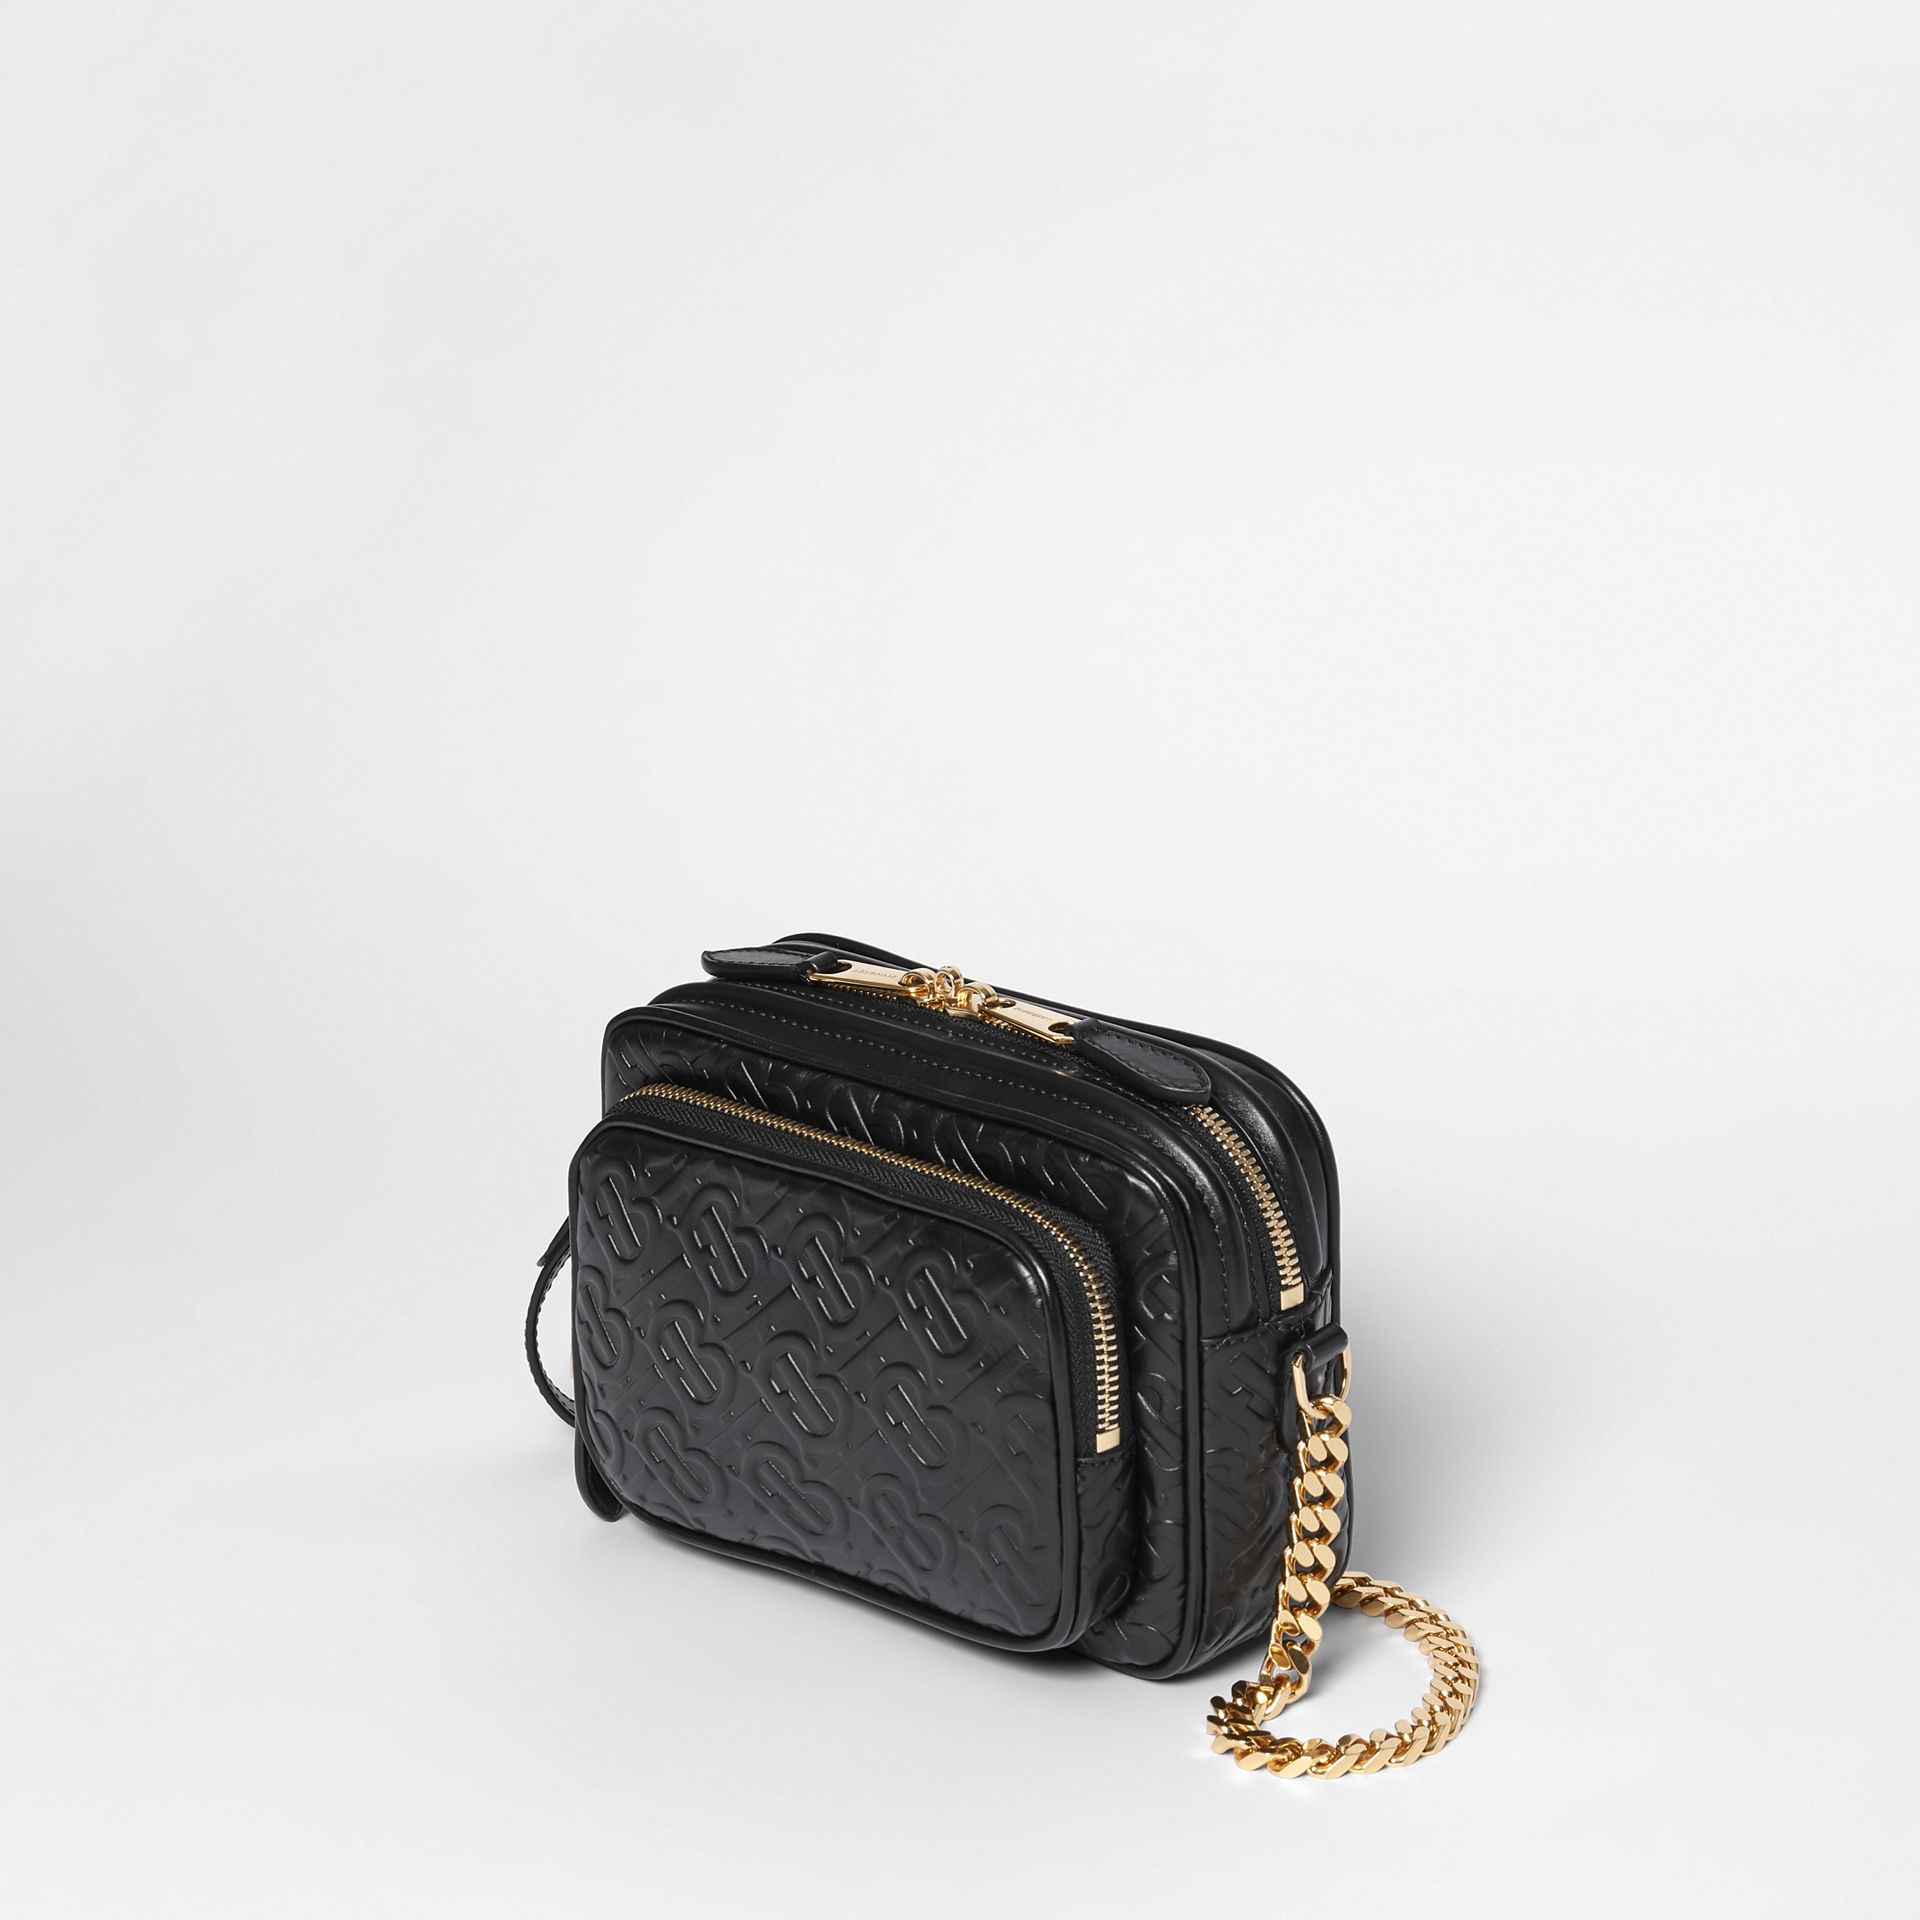 Monogram Leather Camera Bag in Black - Women | Burberry Hong Kong - gallery image 3